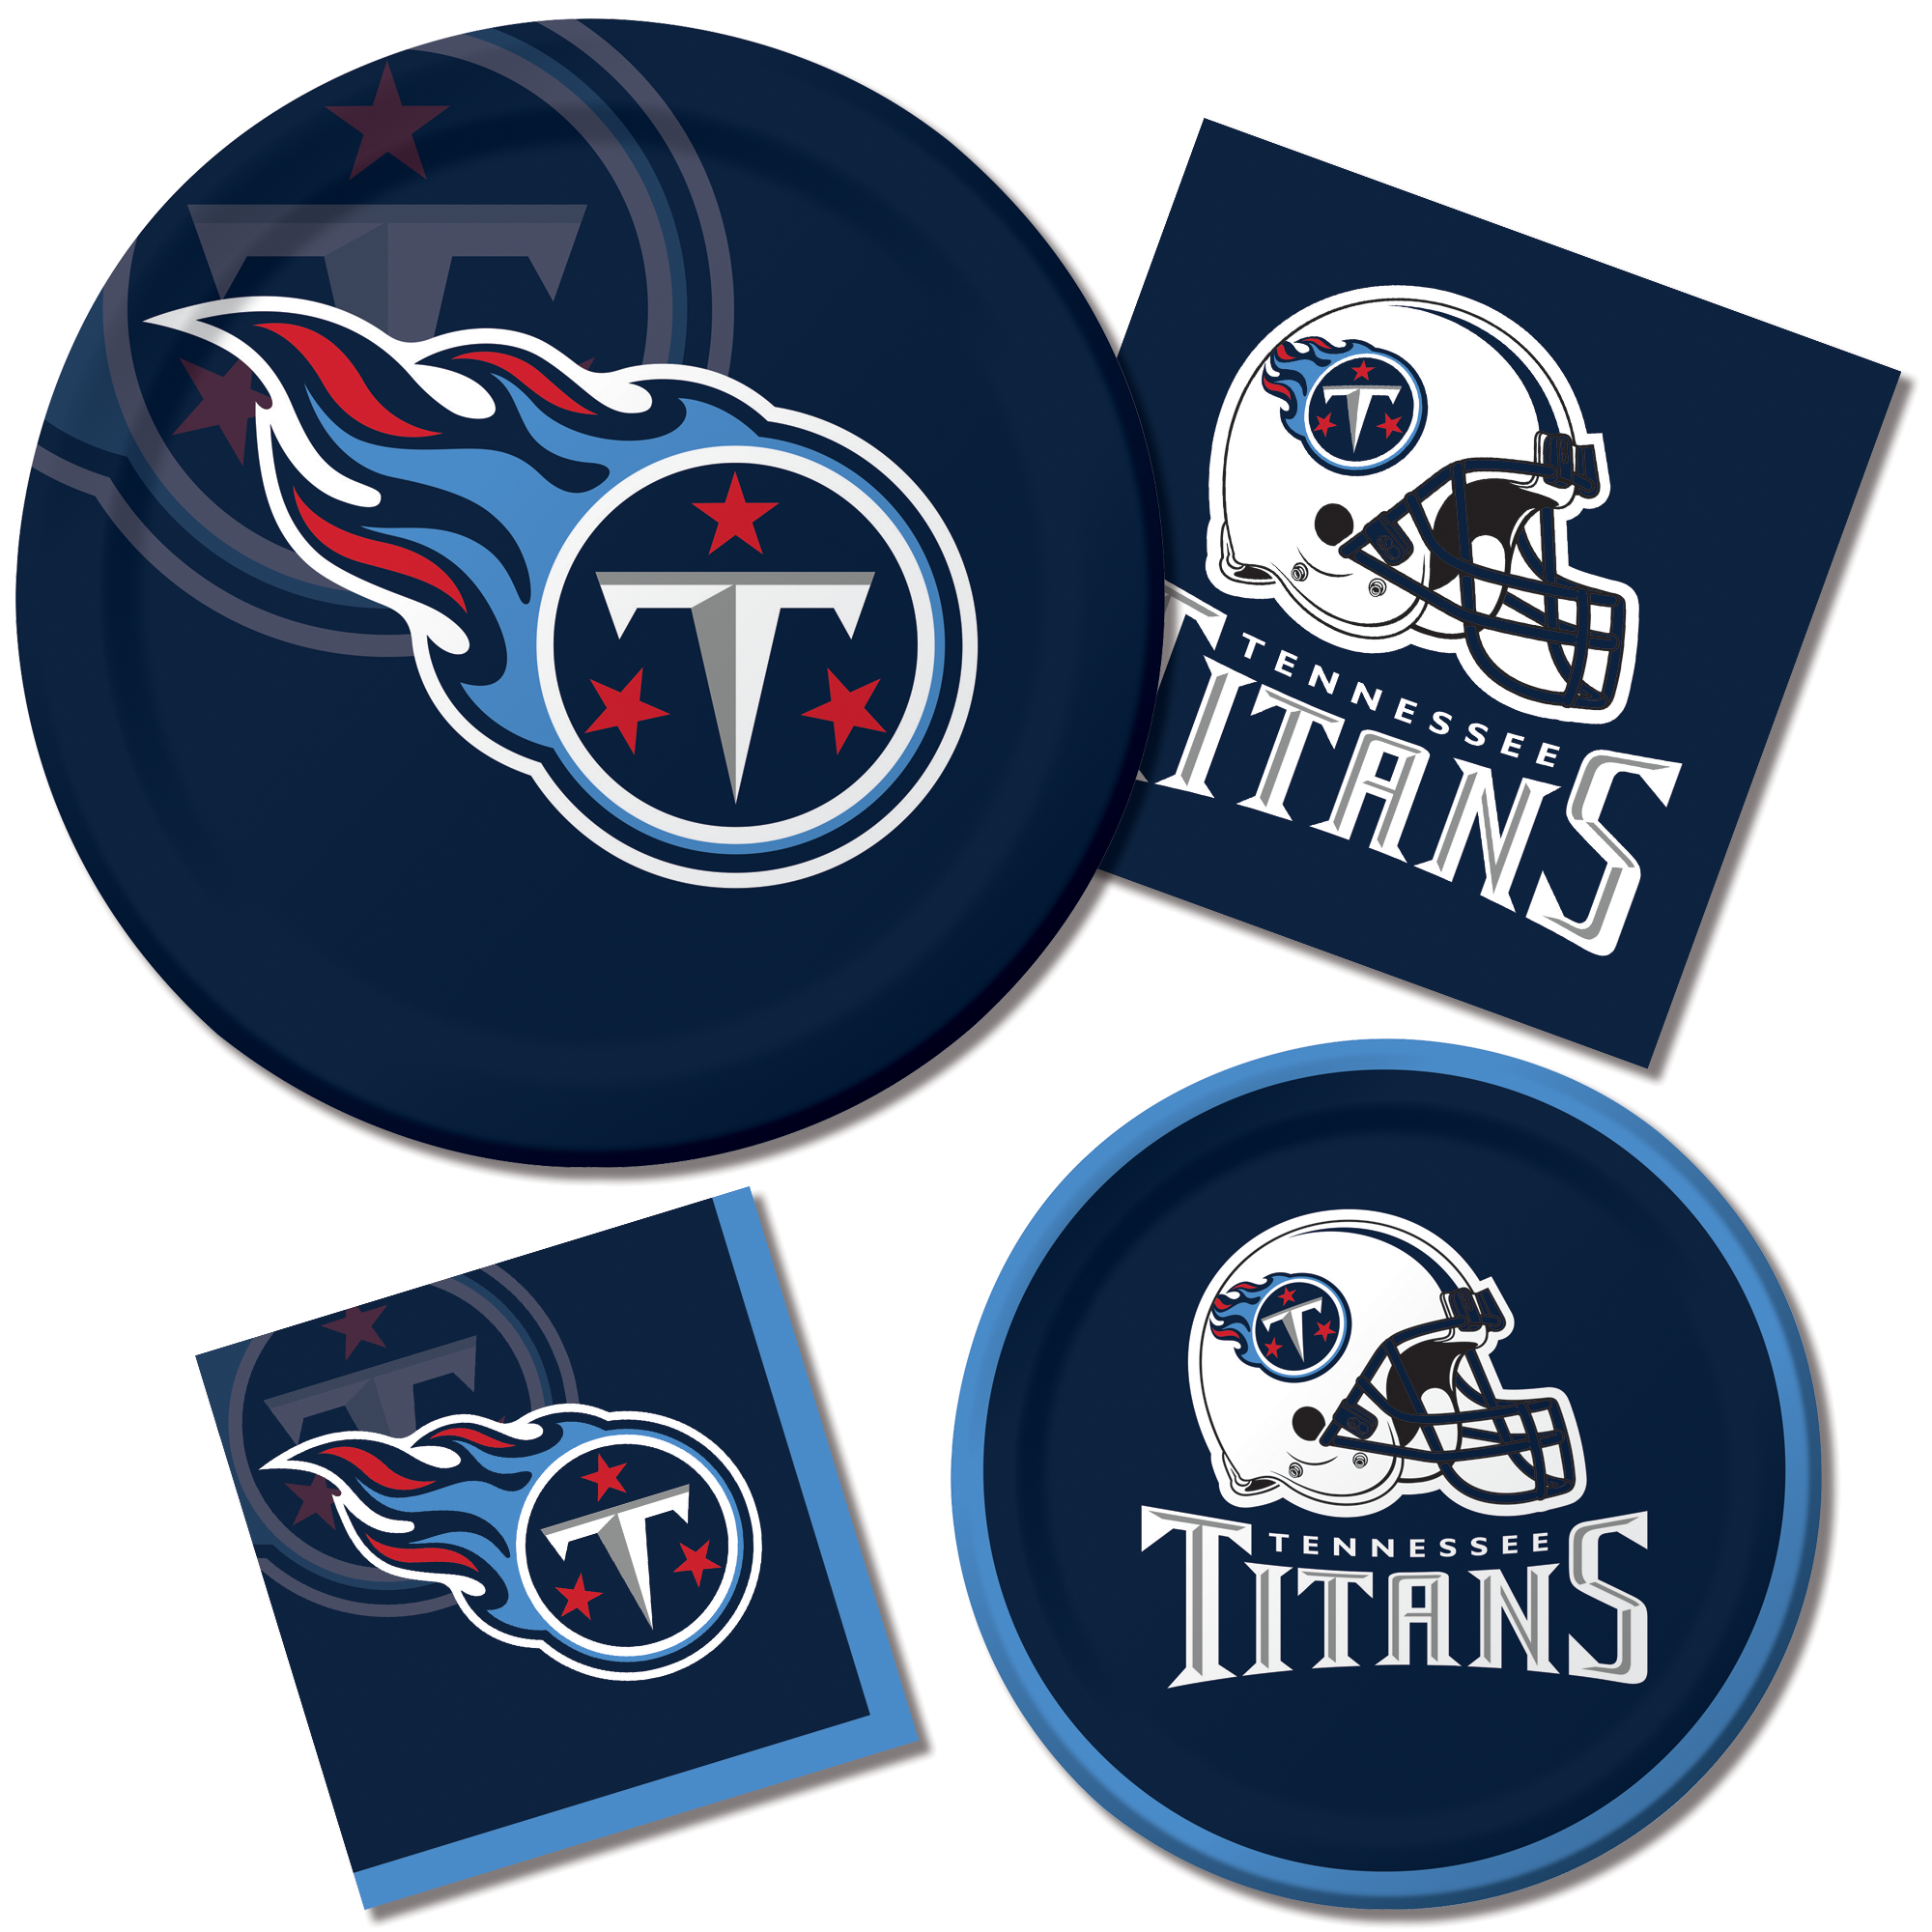 TENNESSEE TITANS PARTY SUPPLIES Nfl Party 344018a97